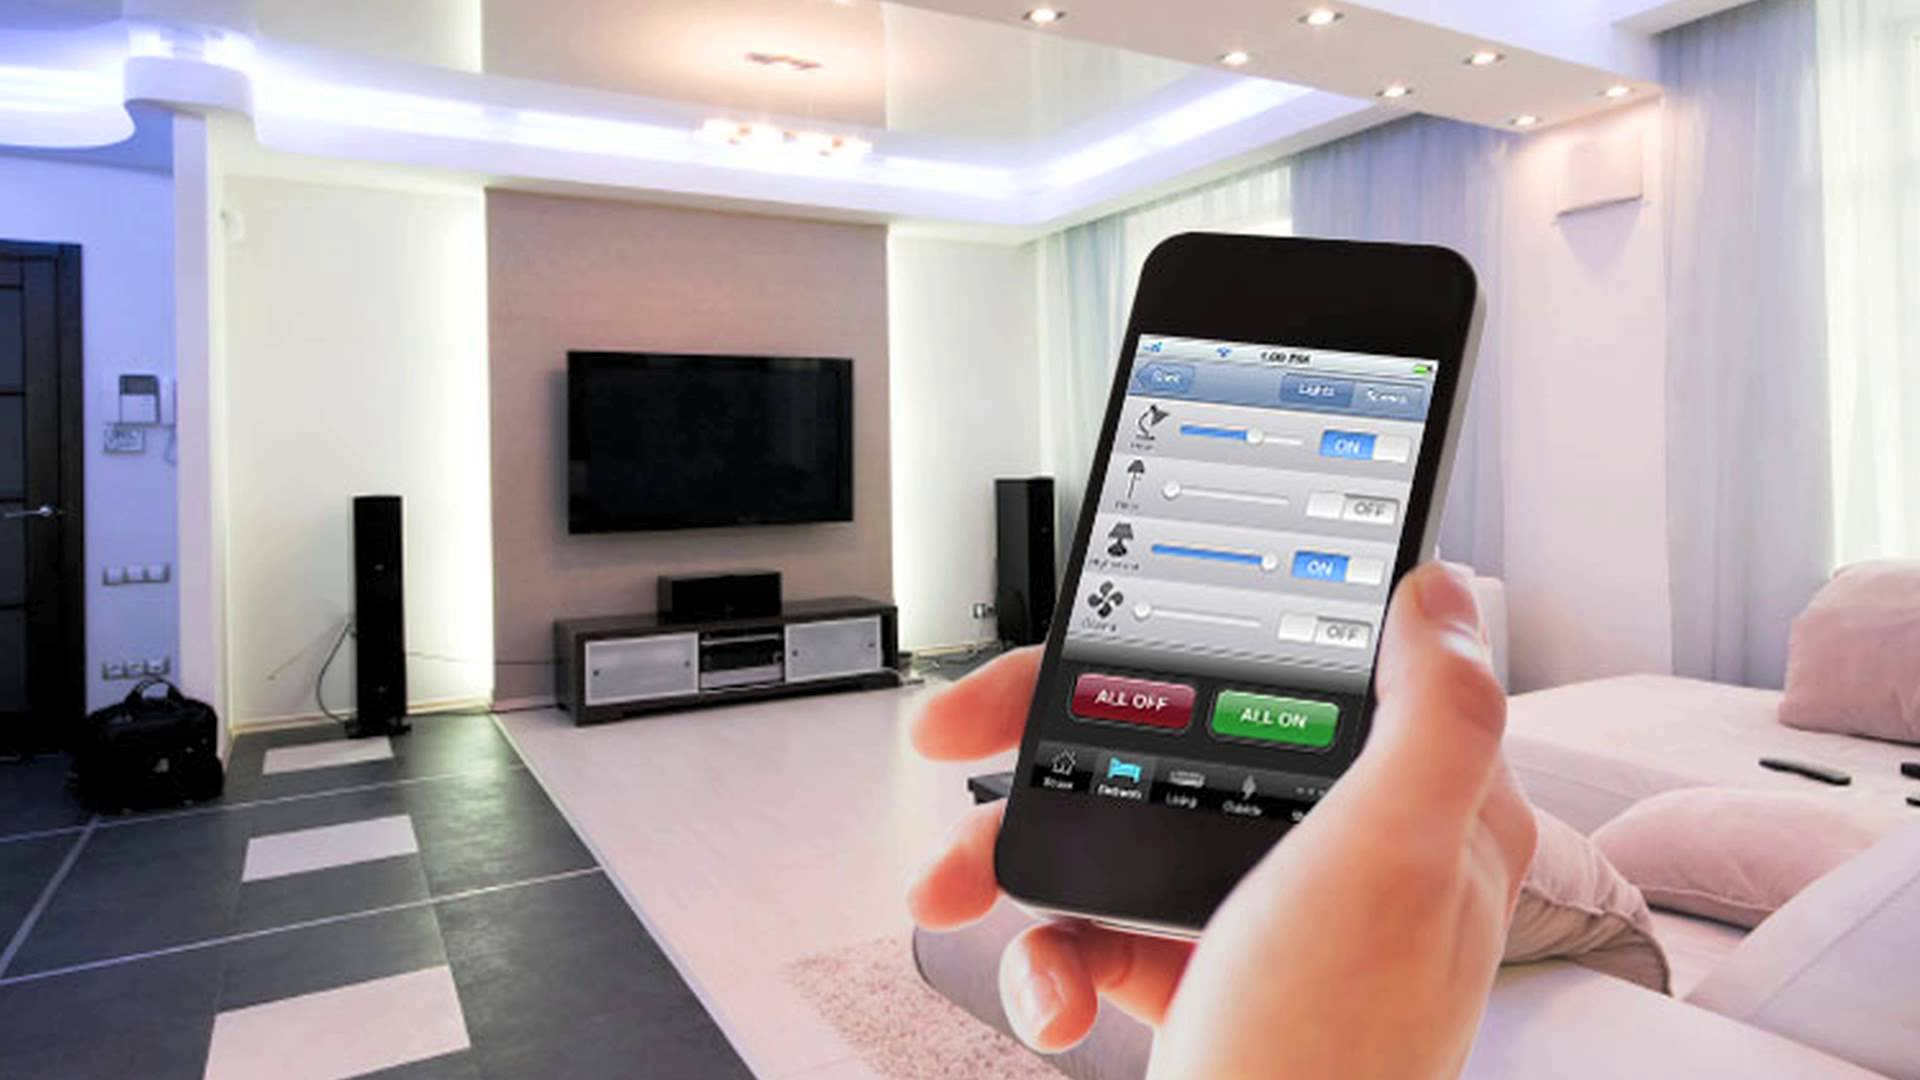 Home Security Automation: What You Need To Know